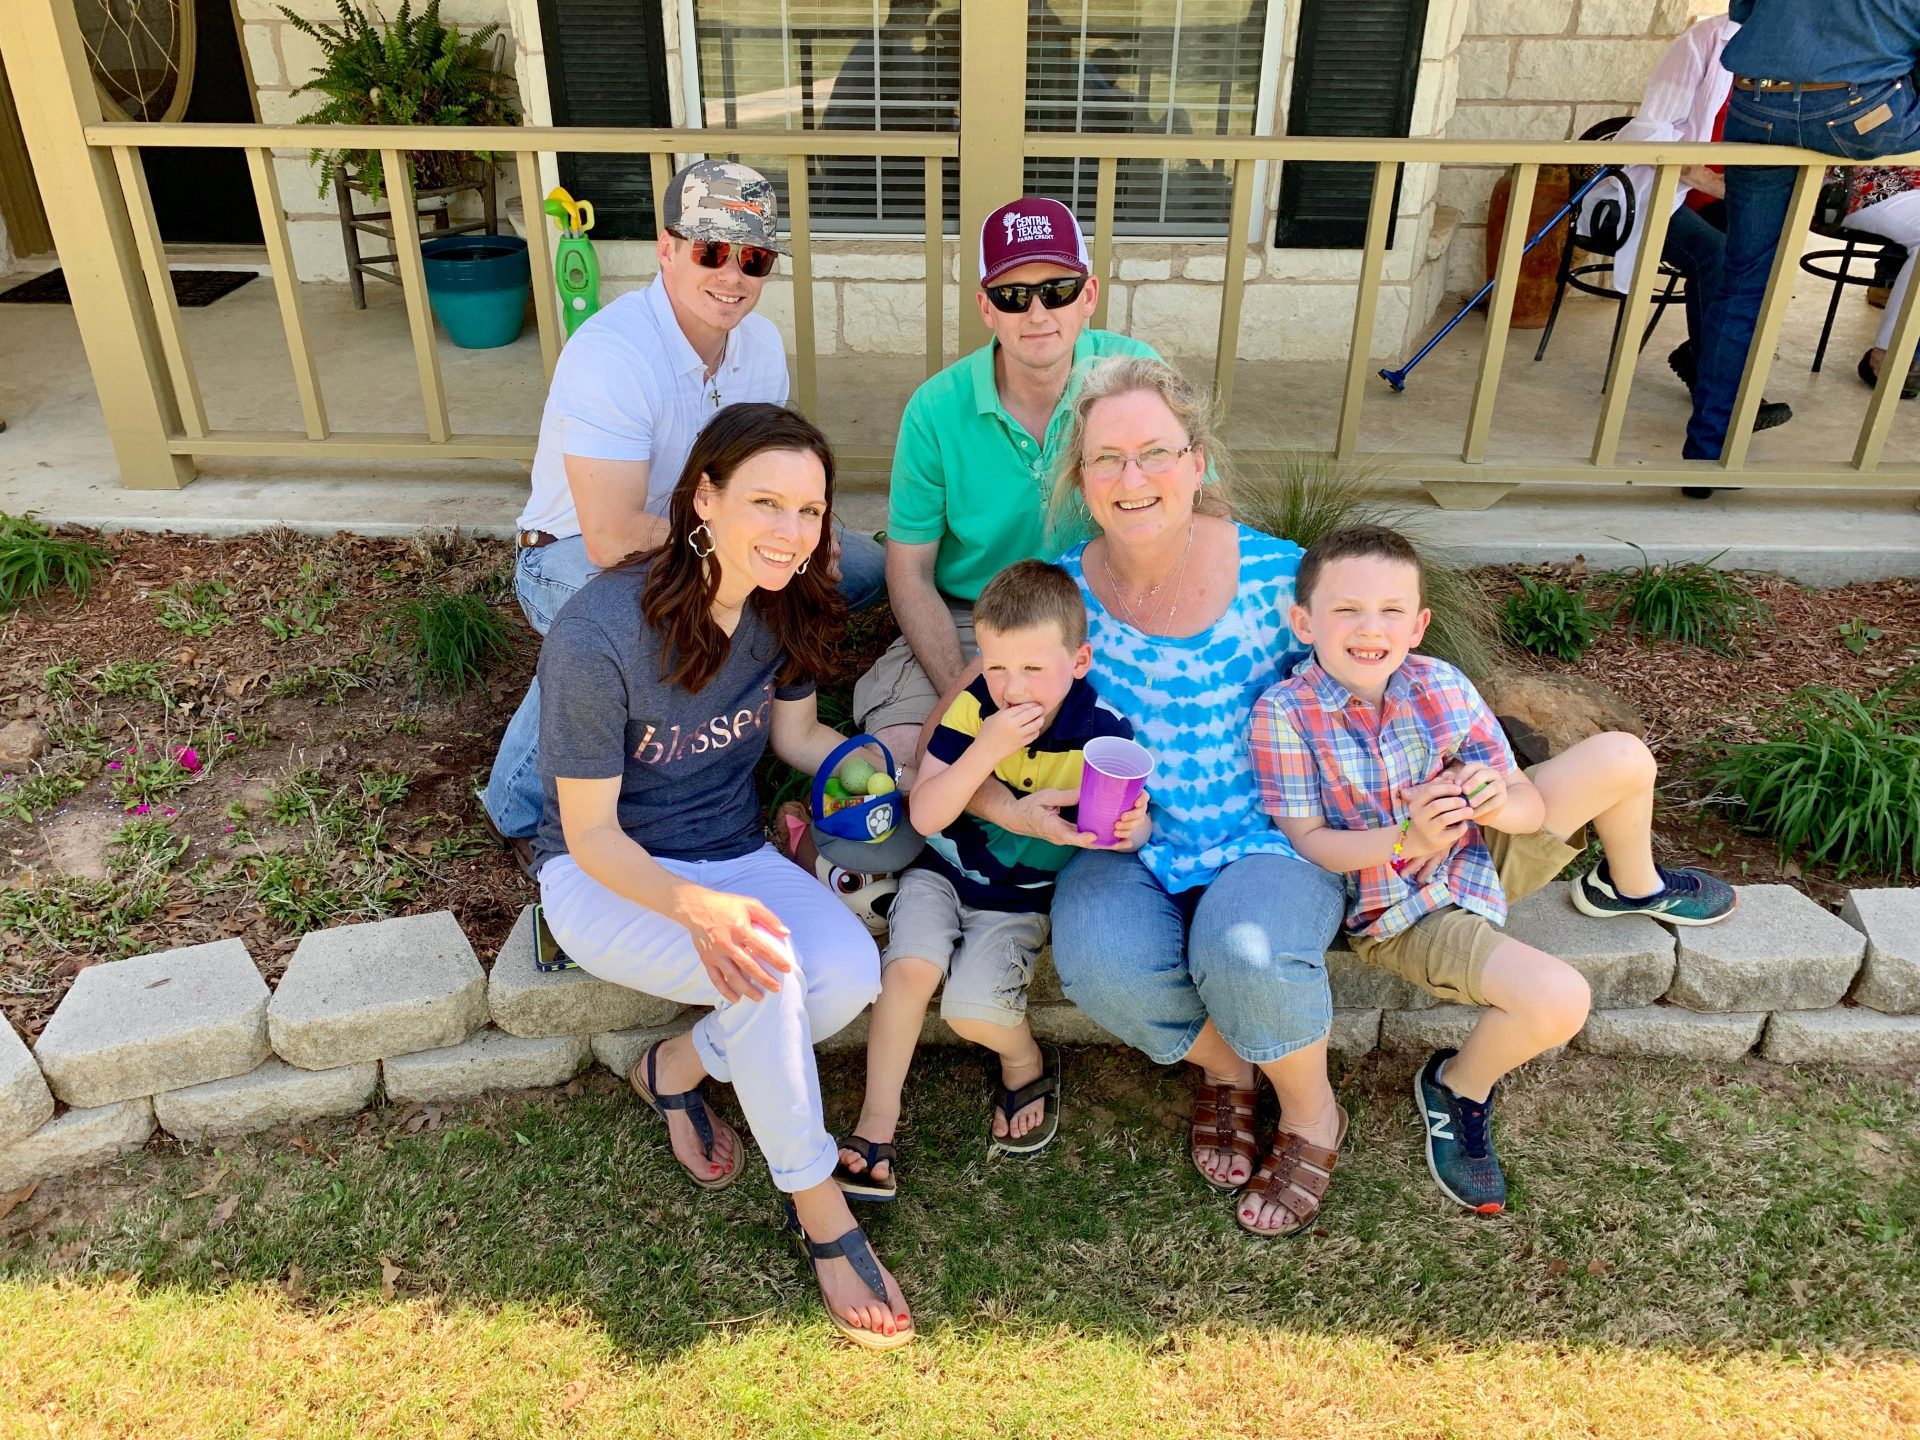 Lone Star Ag Credit's Director of Loan Accounting and Operations, Janet Mathis and her son who is a Sr. Loan Officer at Lone Star Ag Credit Walker Dailey with their family.